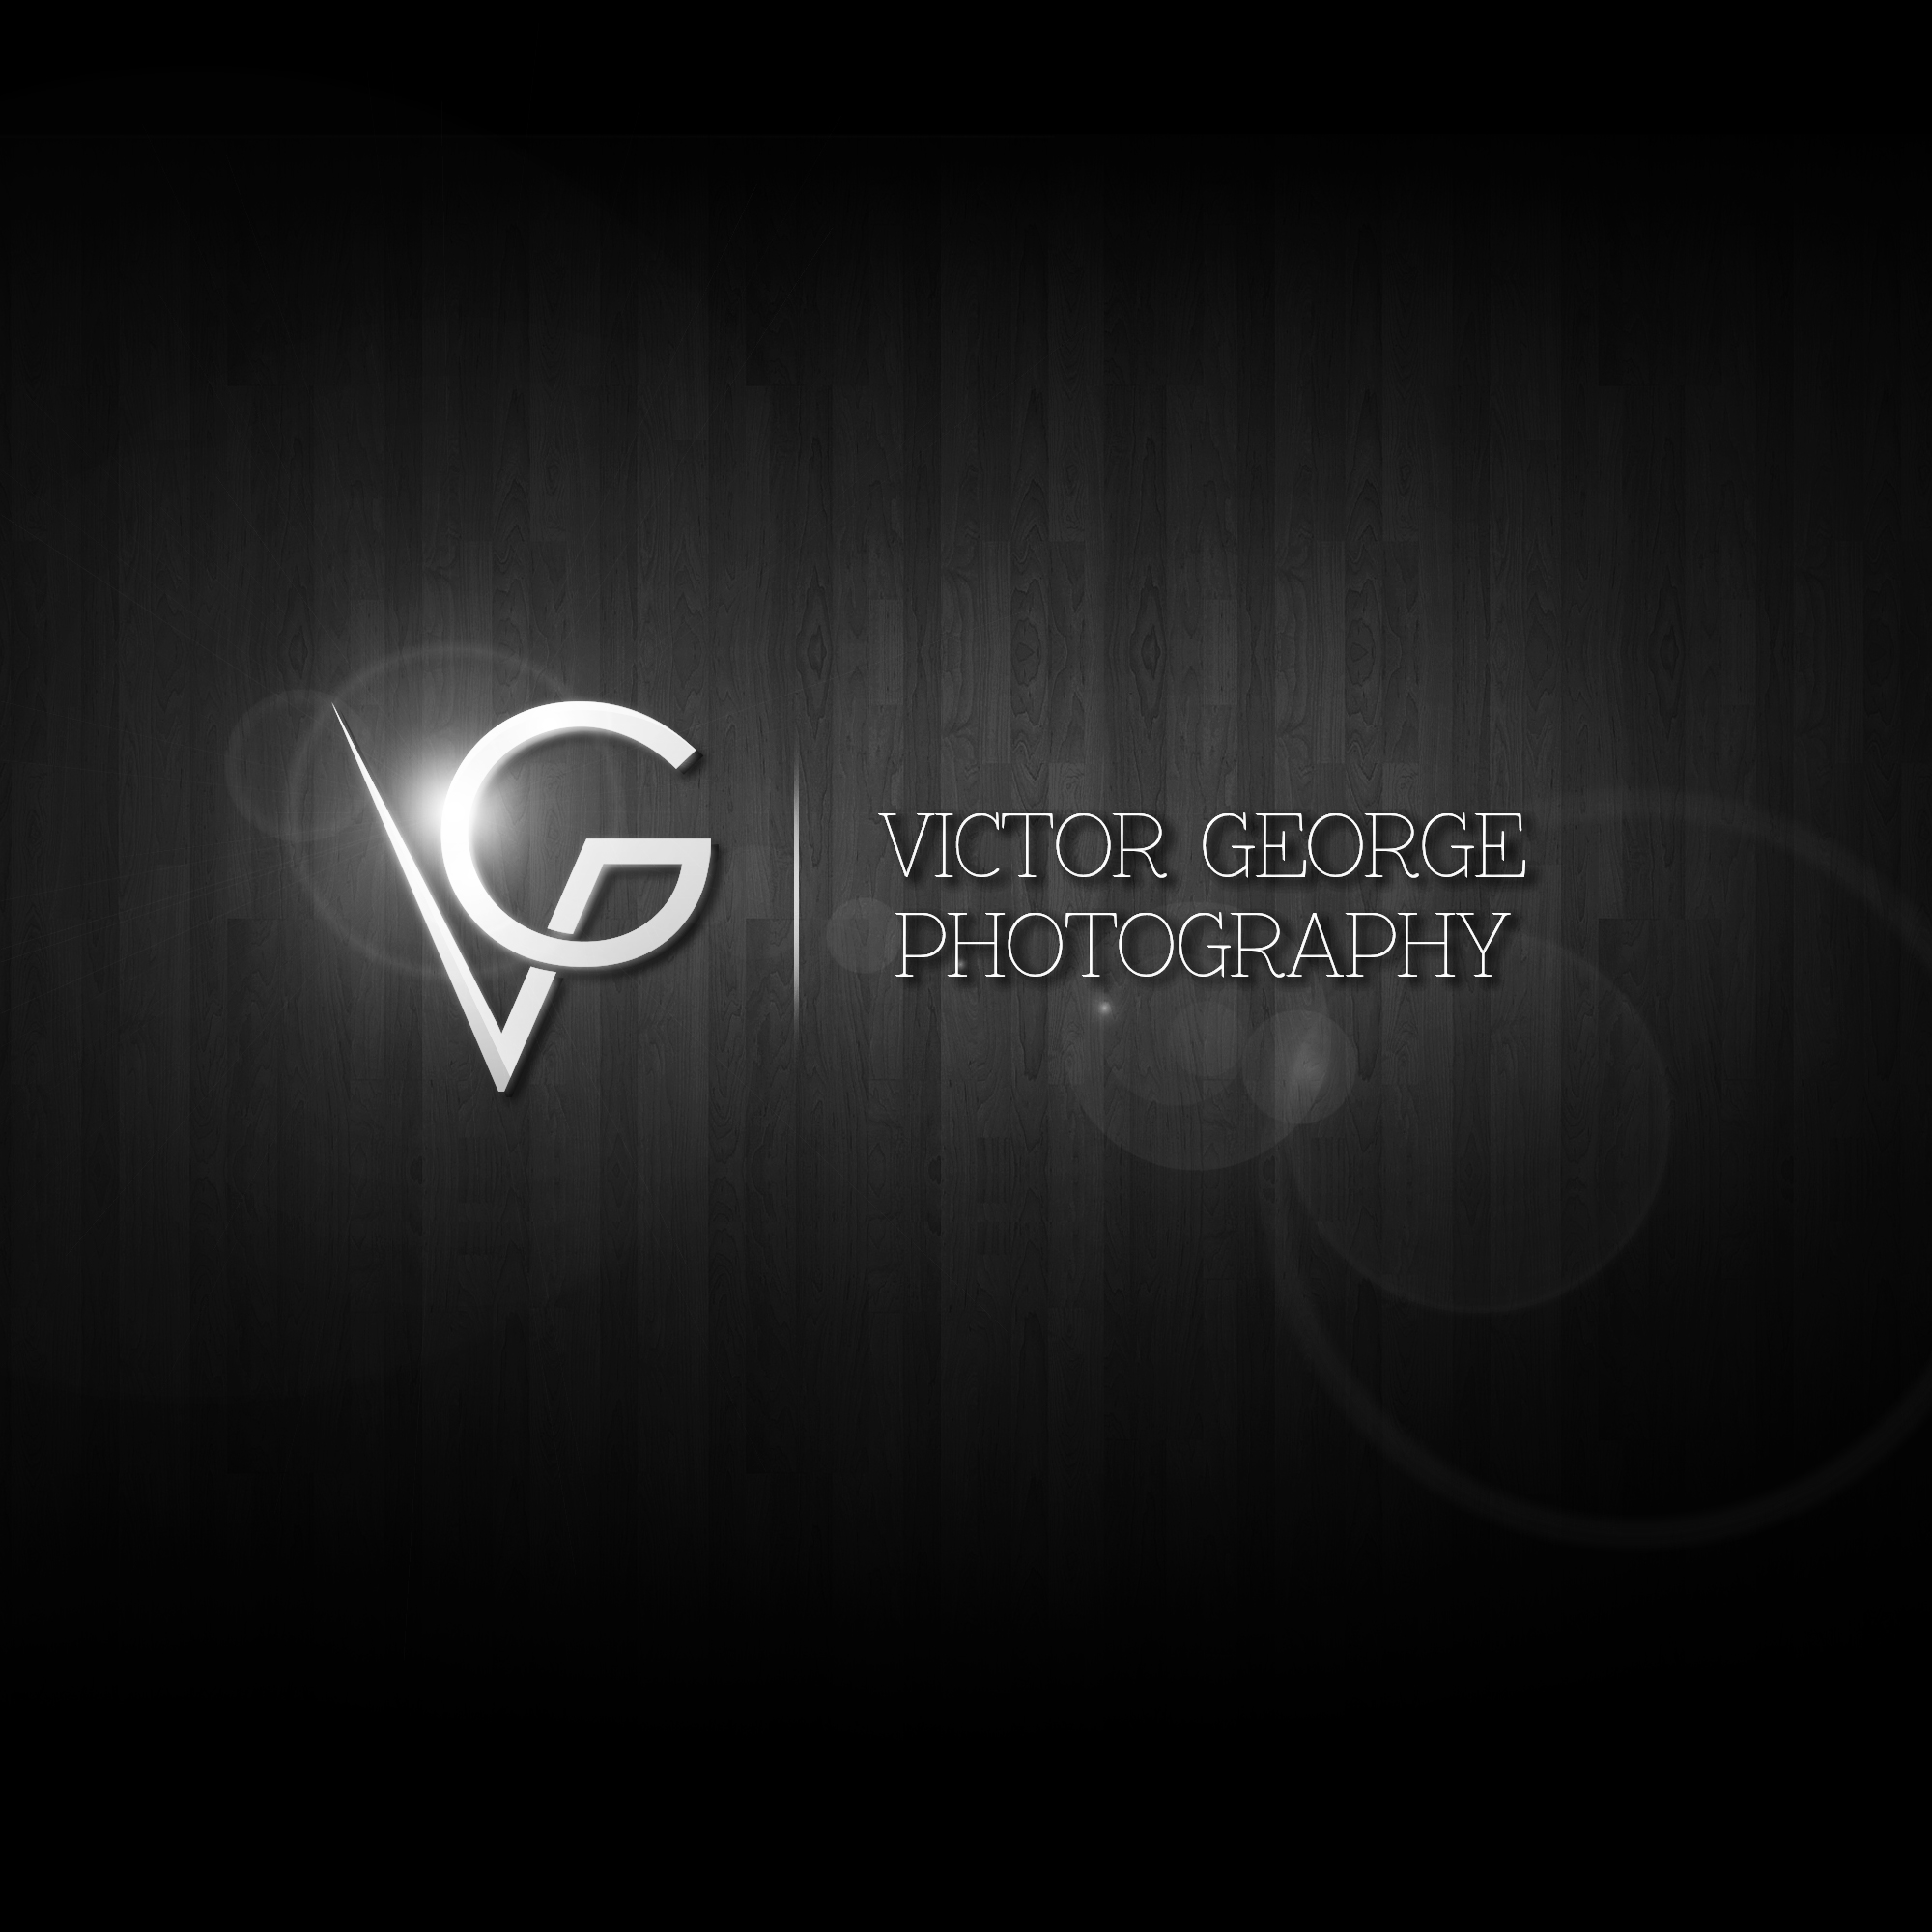 Victor George Photography Logo